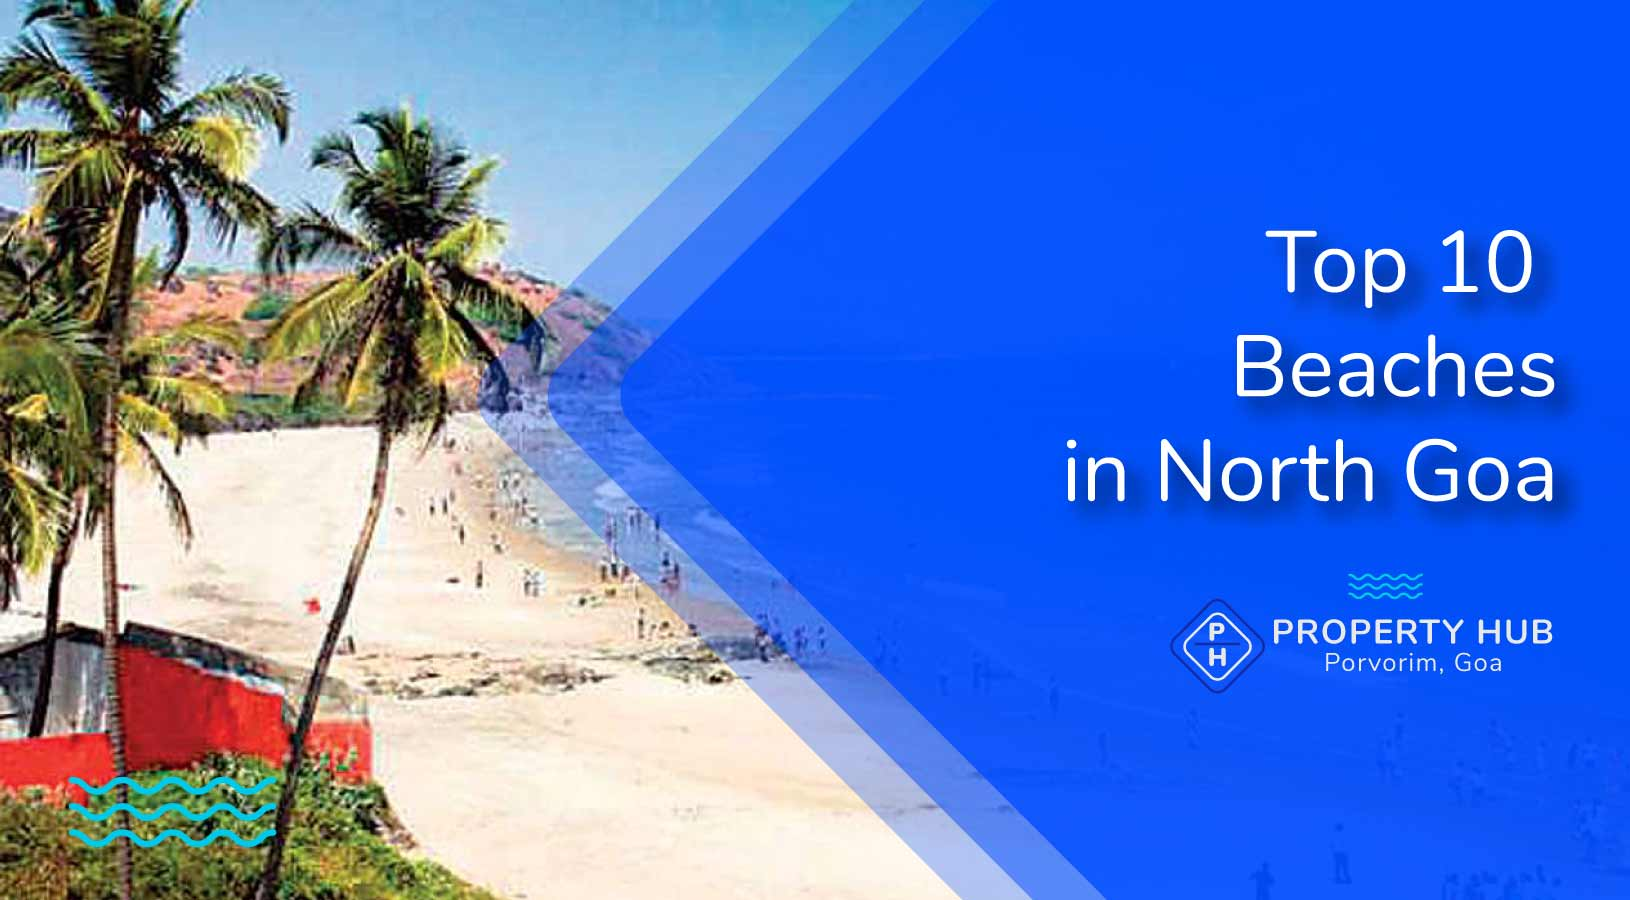 Top 10 must visit beaches in North Goa